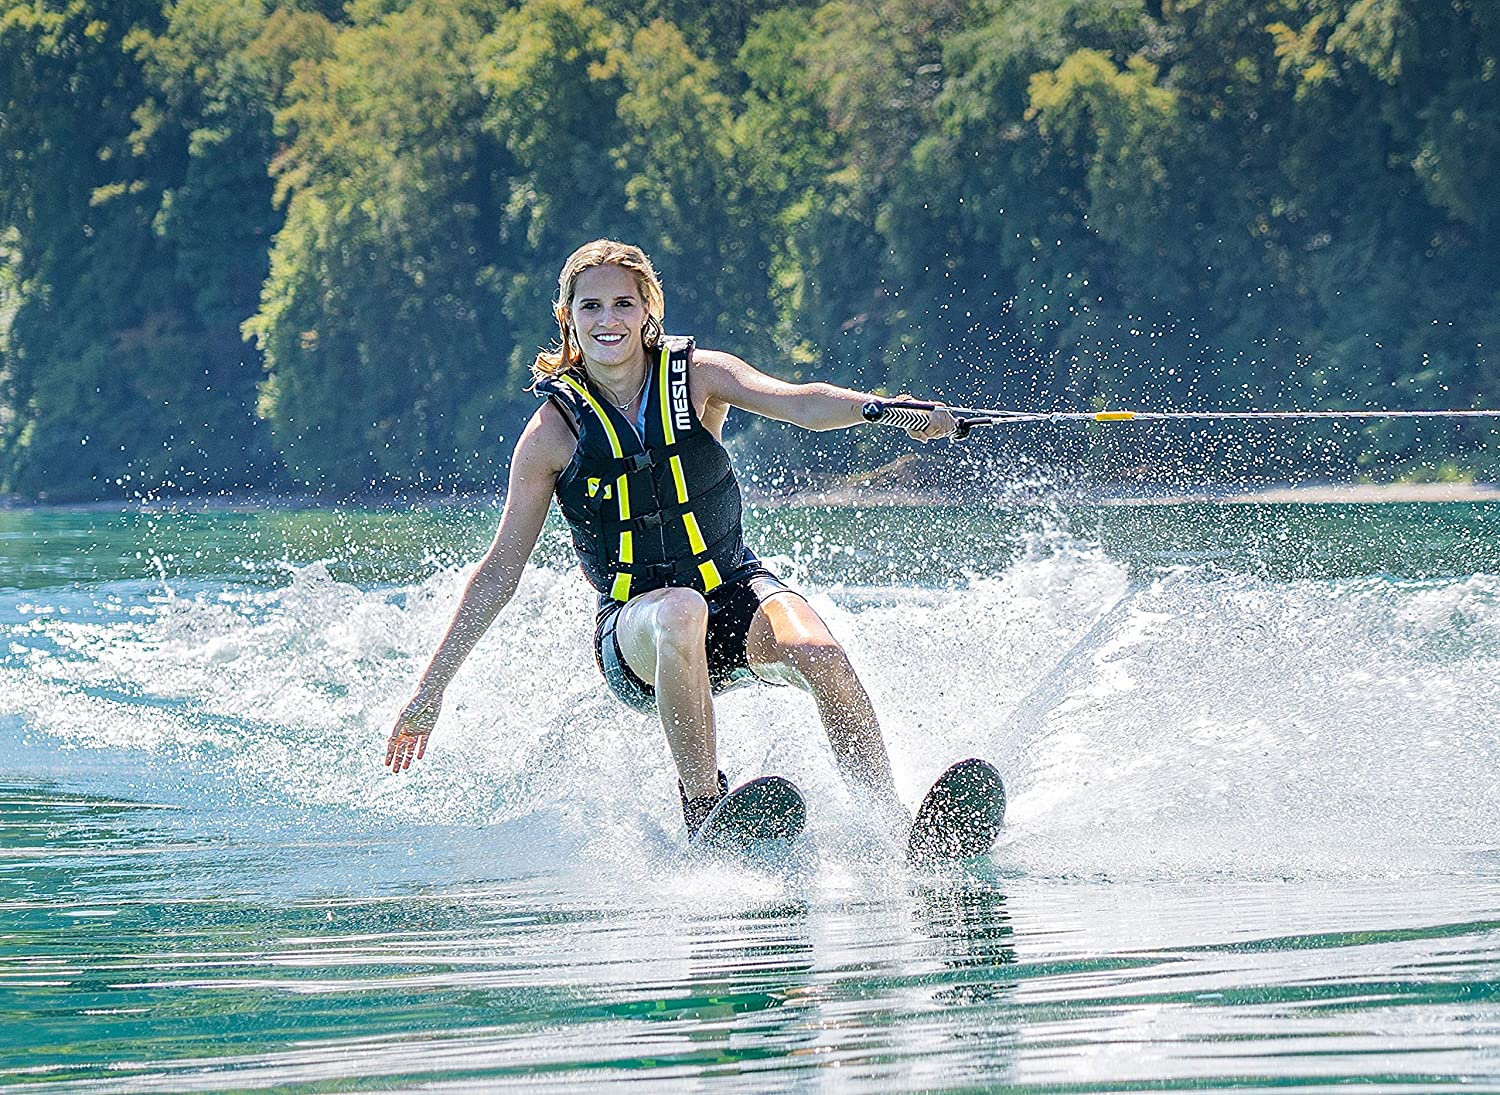 MESLE Combo-Ski Package XPlore 157 cm with Vest Sportsman Water-Ski for Youths and Adults Rope Set lime